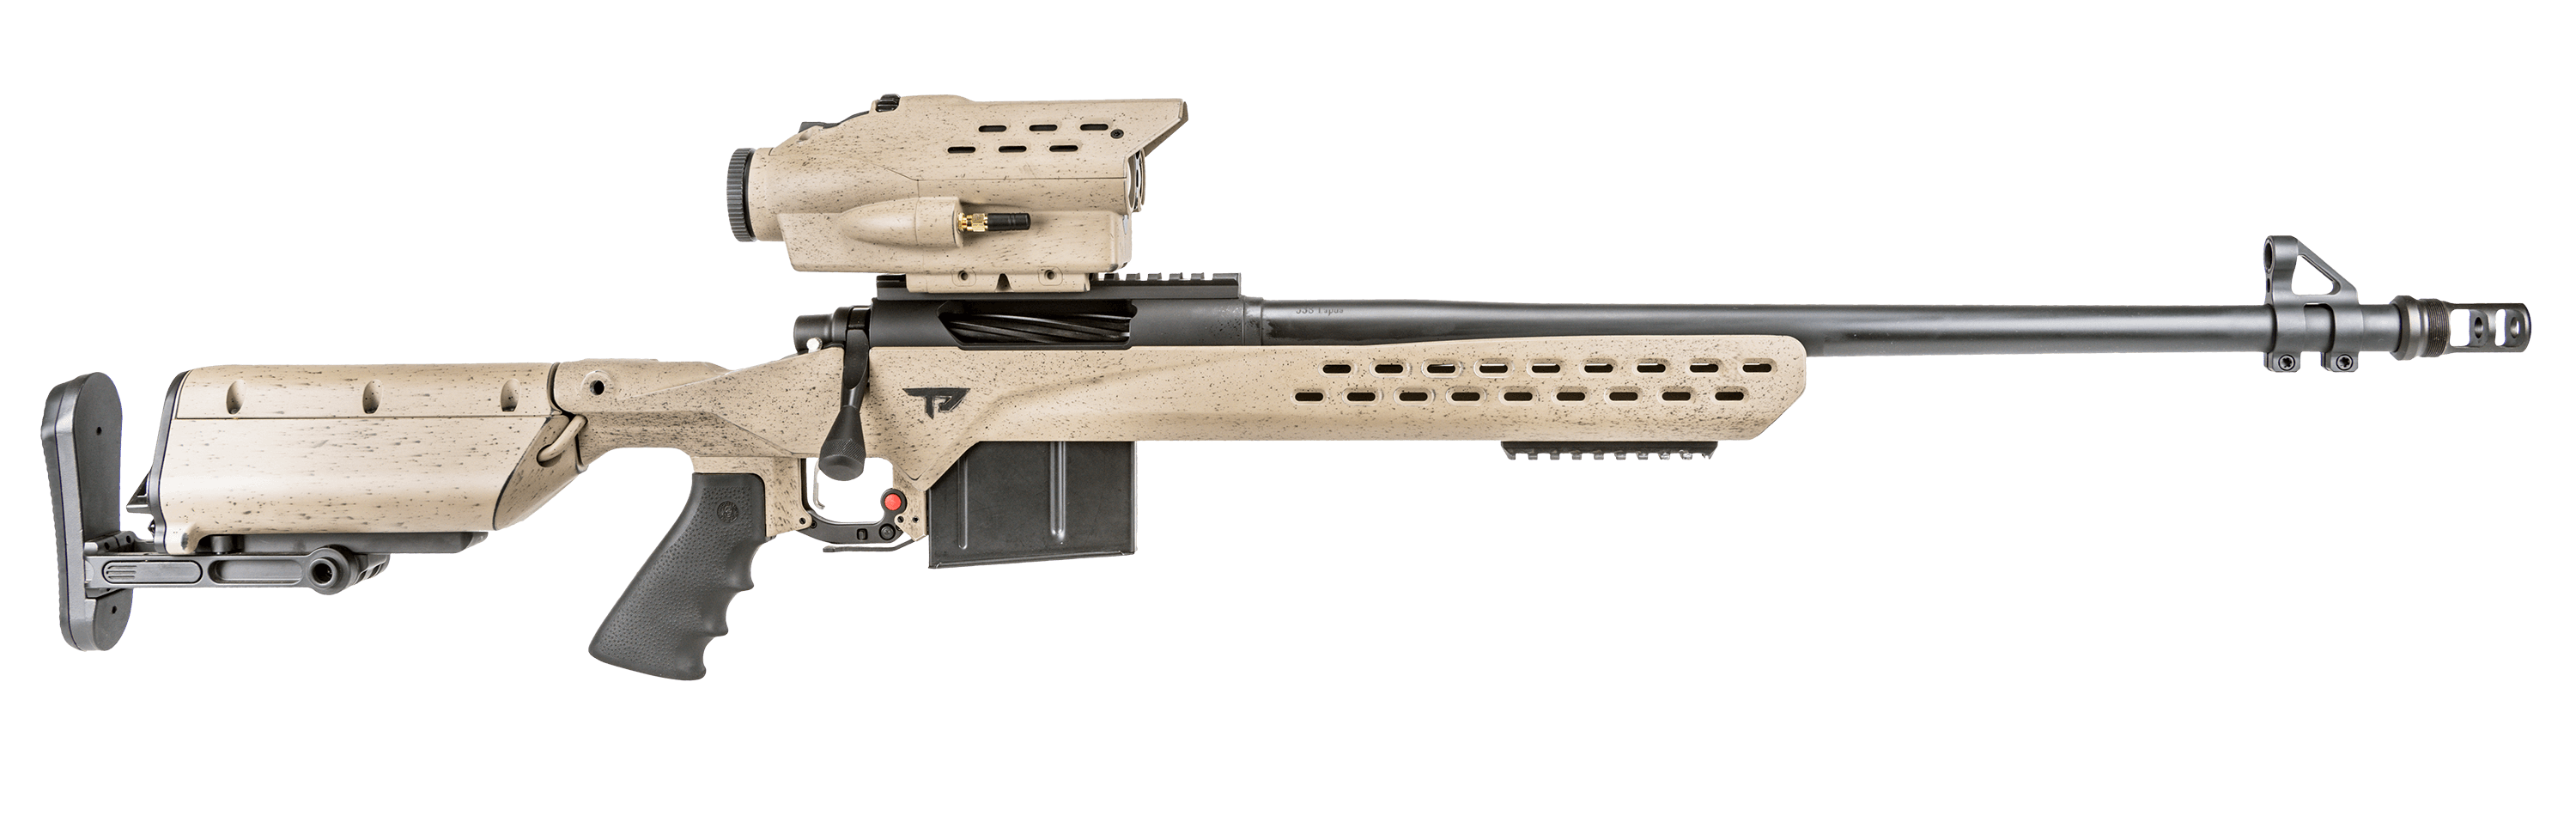 M1400-right-profile.png